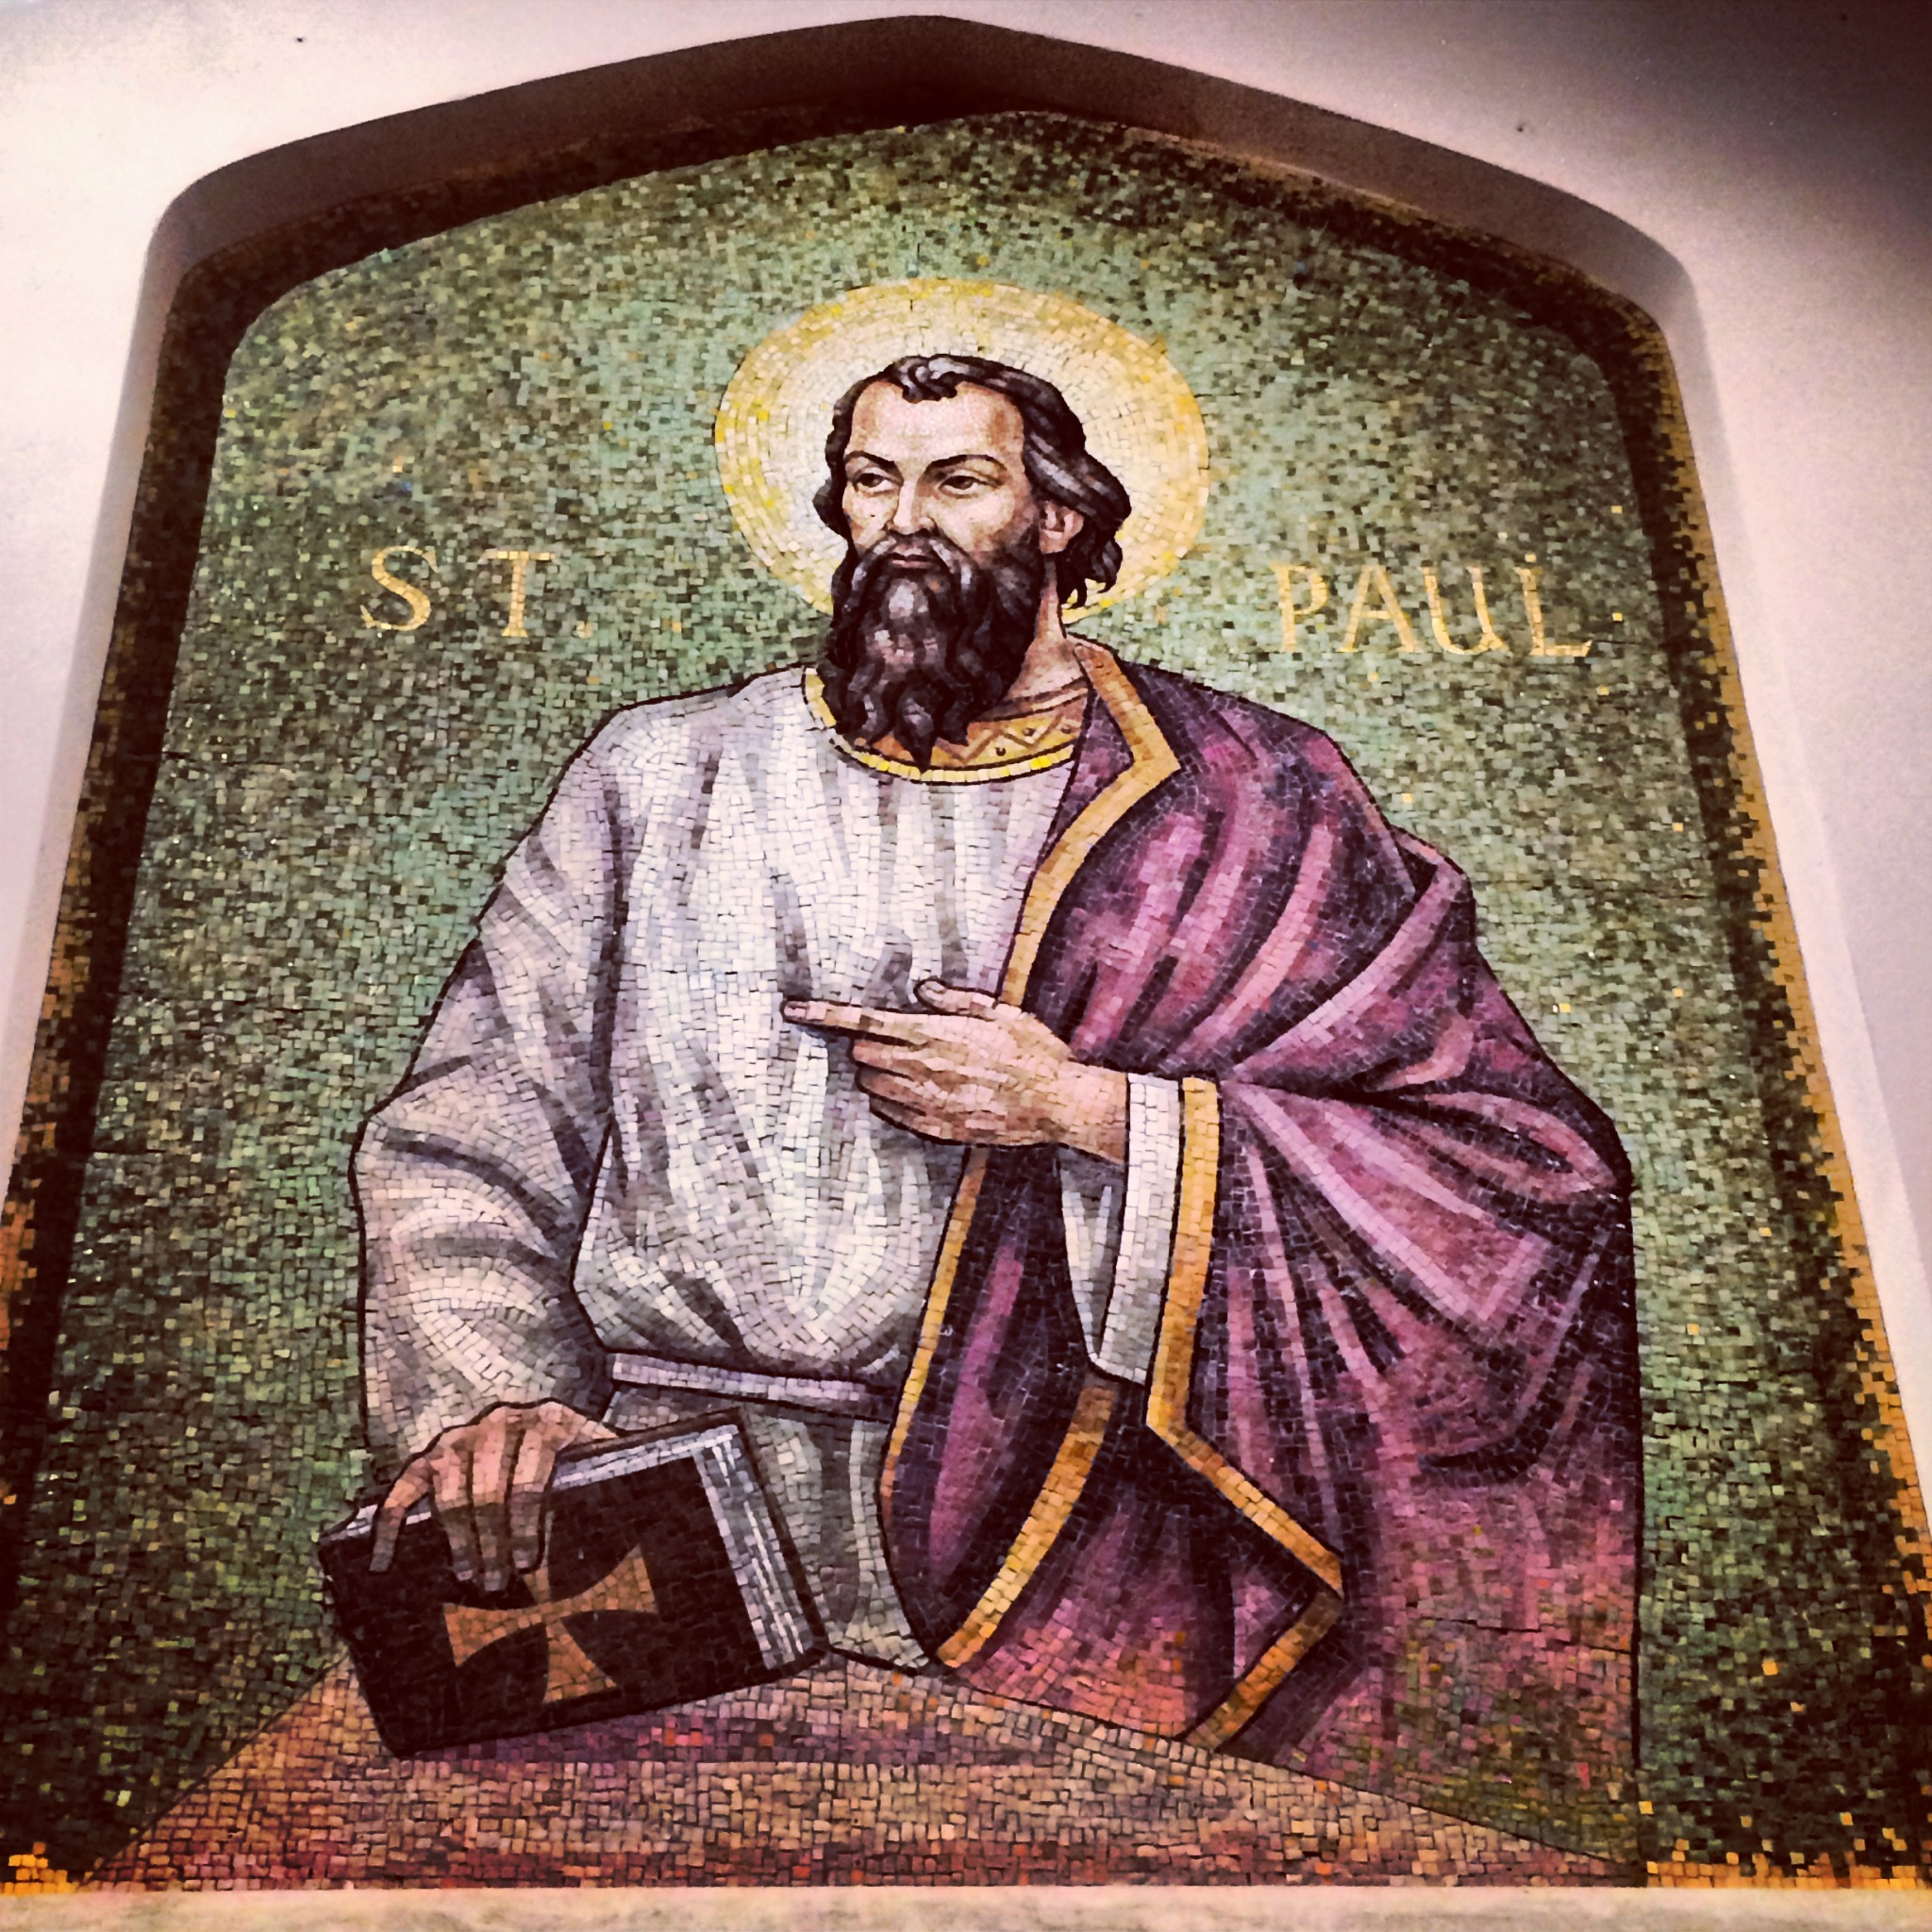 Mosaic of St. Paul